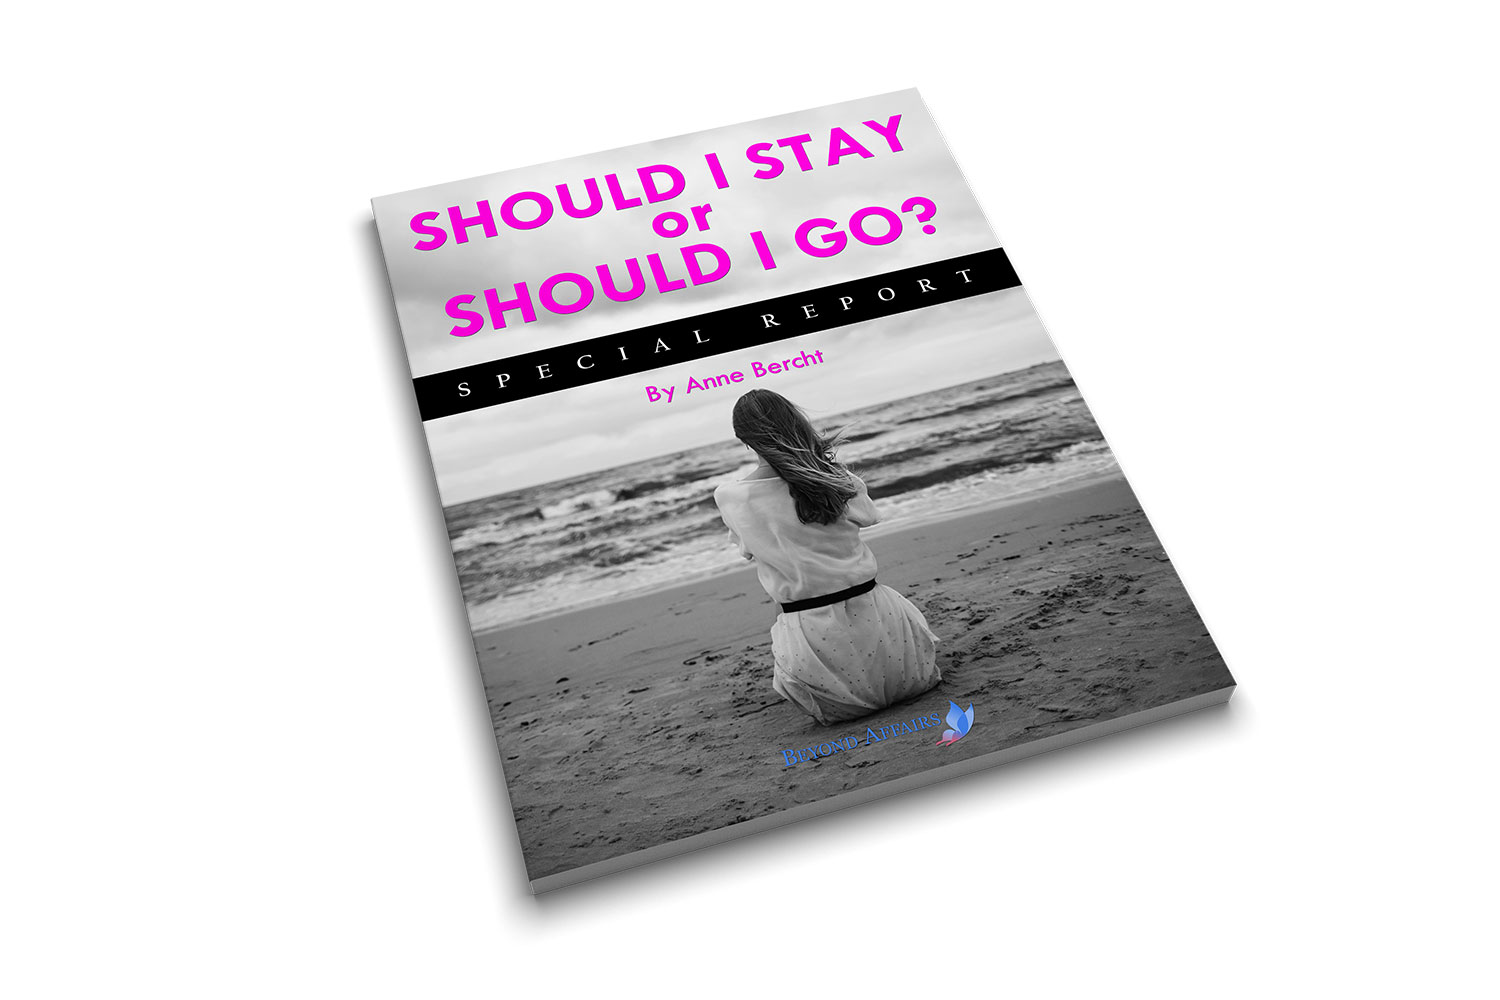 Beyond Affairs special report titled Should I Stay or Should I Go for betrayed women or men